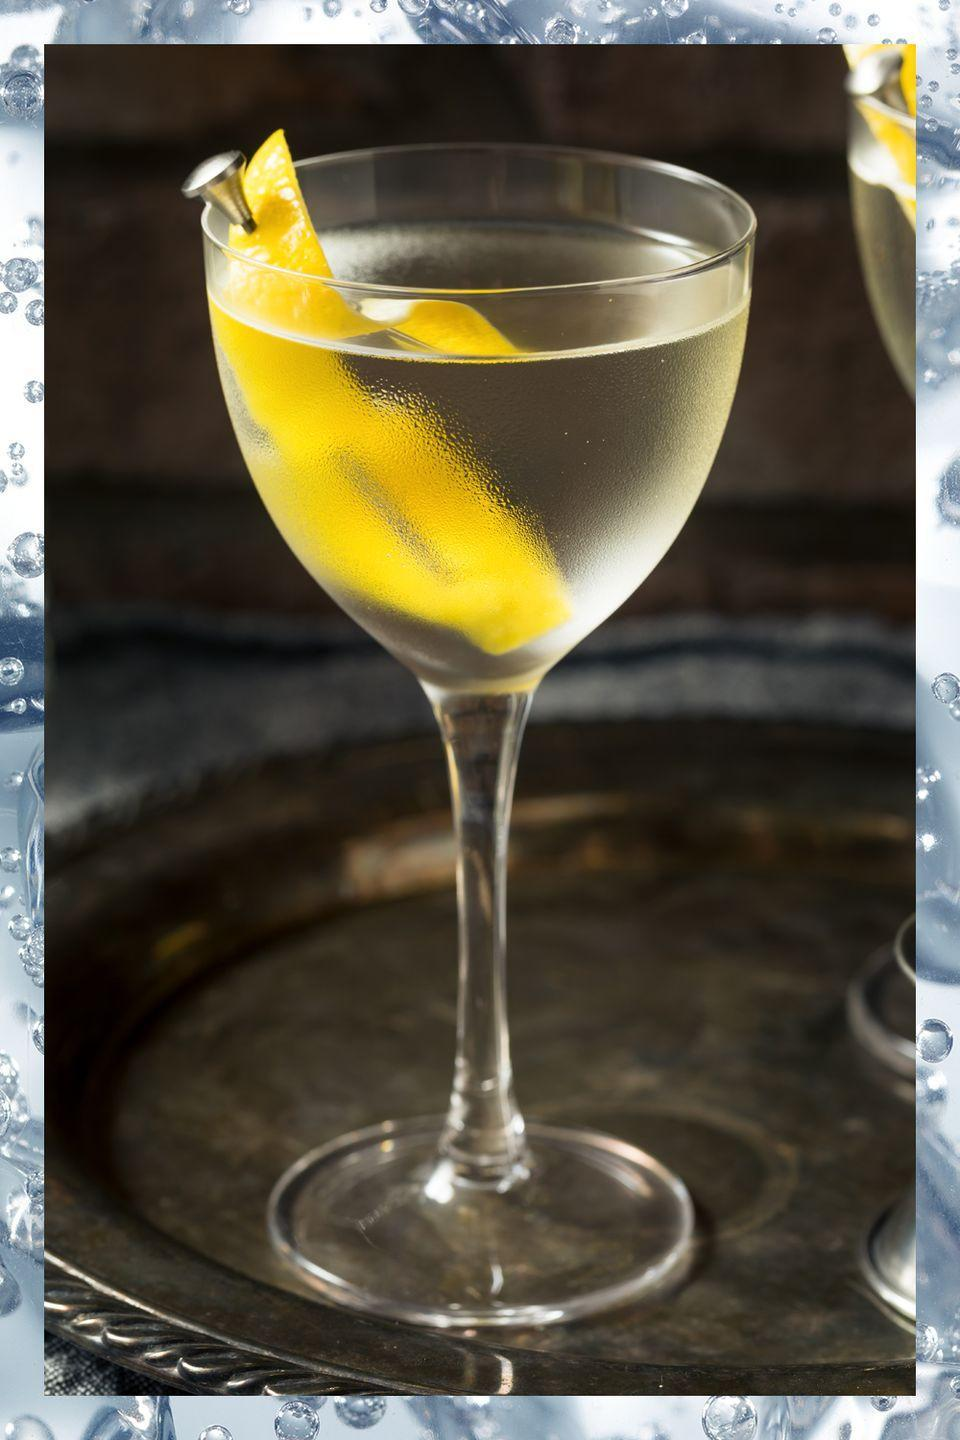 """<p>You might think of a martini when you think of James Bond, but this drink is the true tipple of the iconic spy—the recipe first appeared in Ian Fleming's 1953 novel Casino Royale in homage to the Bond girl Vesper Lynd. While Bond takes his """"shaken, not stirred"""", most stick to the rule that spirits-only cocktails should be stirred instead. </p><p>- 3 oz gin<br>- 1 oz vodka<br>- .5 oz Lillet blanc<br></p><p><em>Combine all ingredients in a mixing glass with ice and stir until well chilled. Garnish with a lemon twist. </em></p>"""